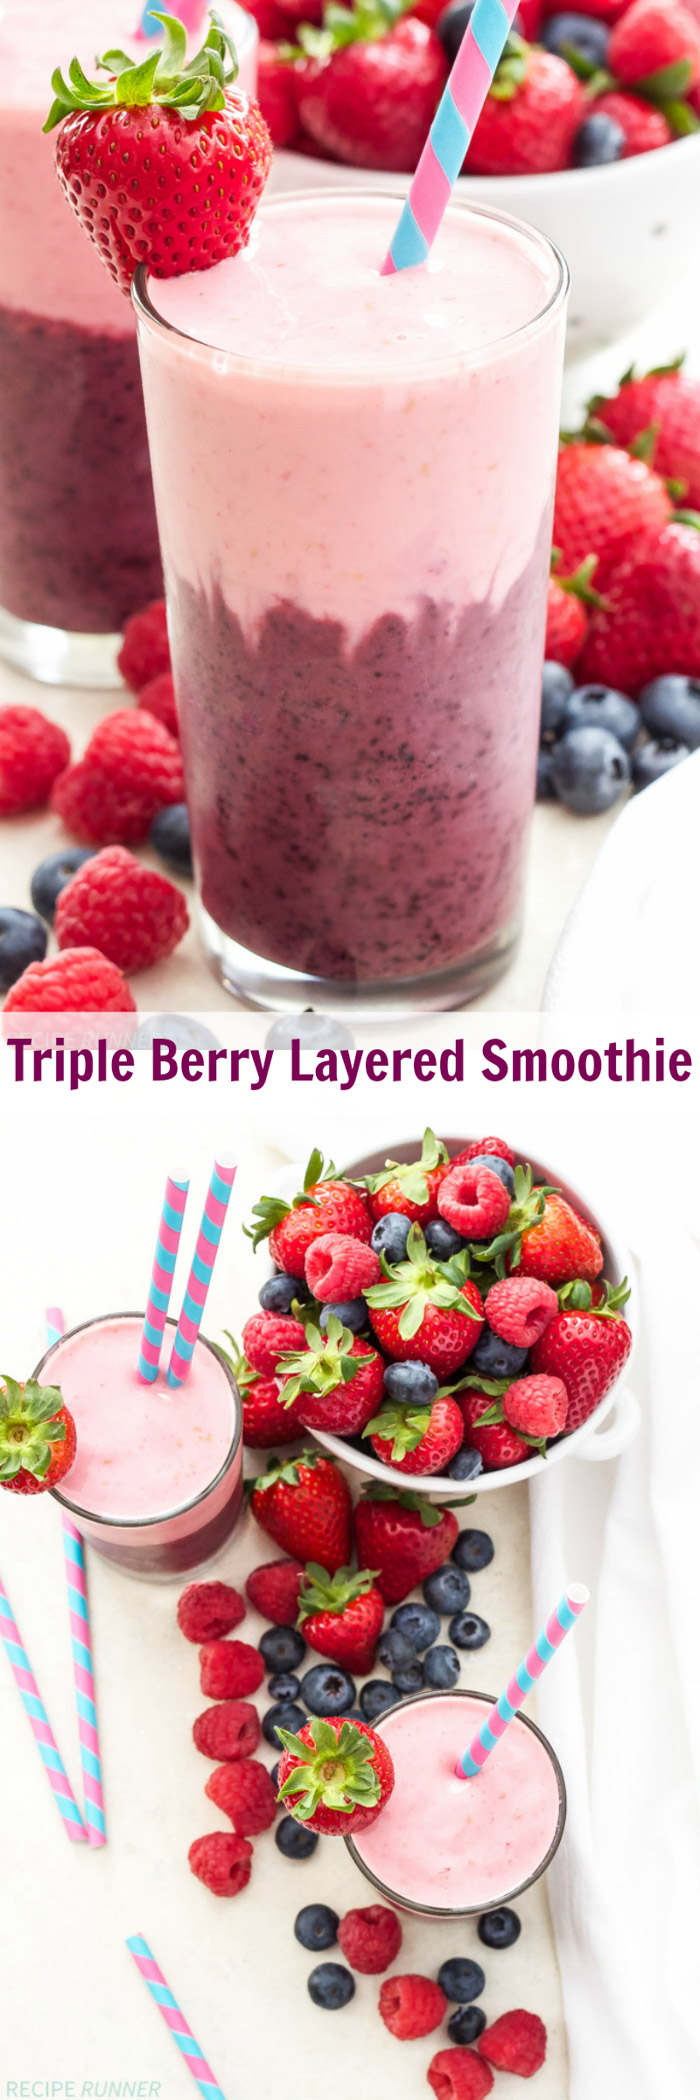 Triple Berry Layered Smoothie | Strawberries, raspberries and blueberries blended together with Greek yogurt in this thick and delicious layered smoothie!